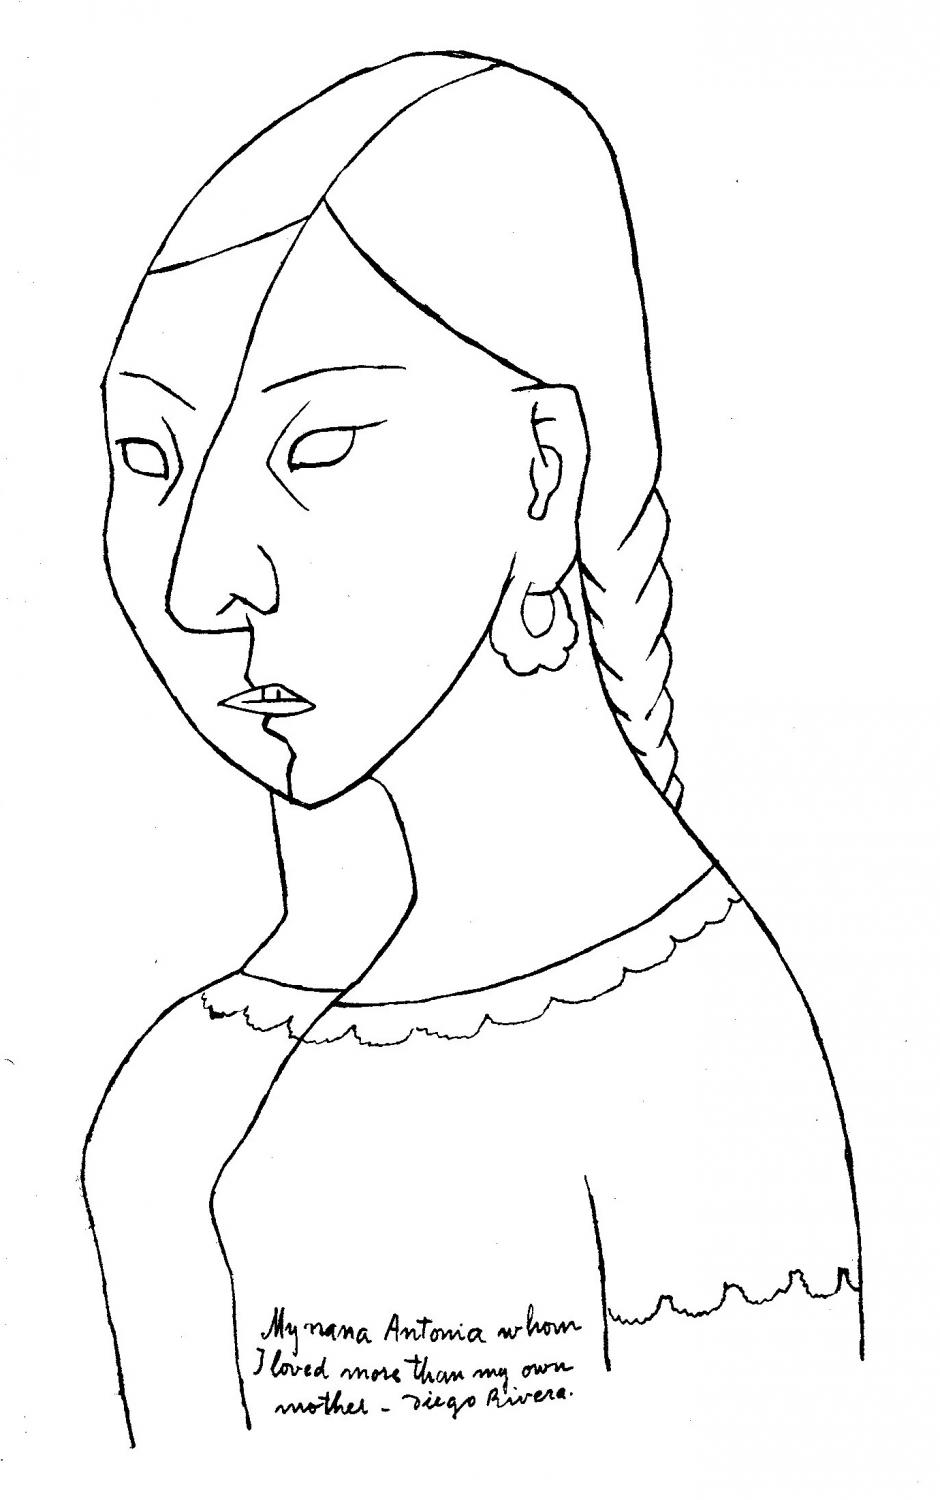 diego rivera printable coloring pages - photo#17